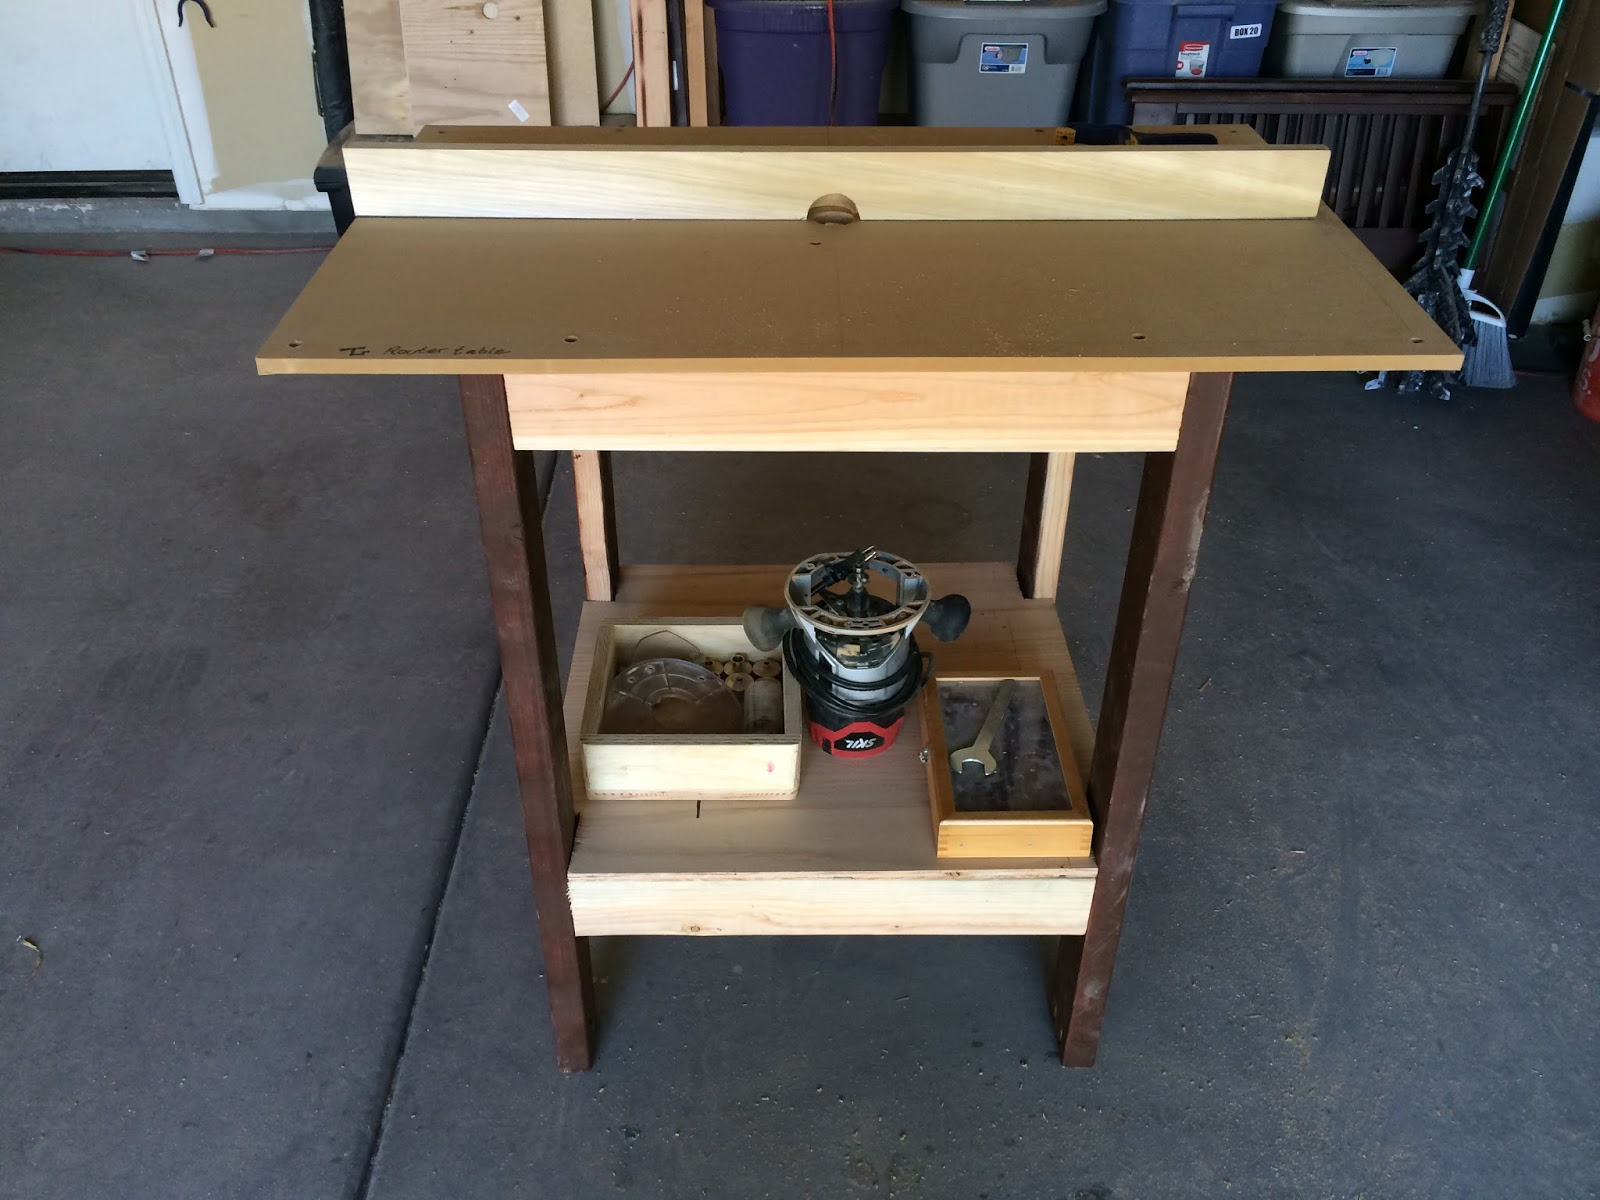 Diy Benchtop Router Table Timbo 39s Creations Diy Bench Top Router Table